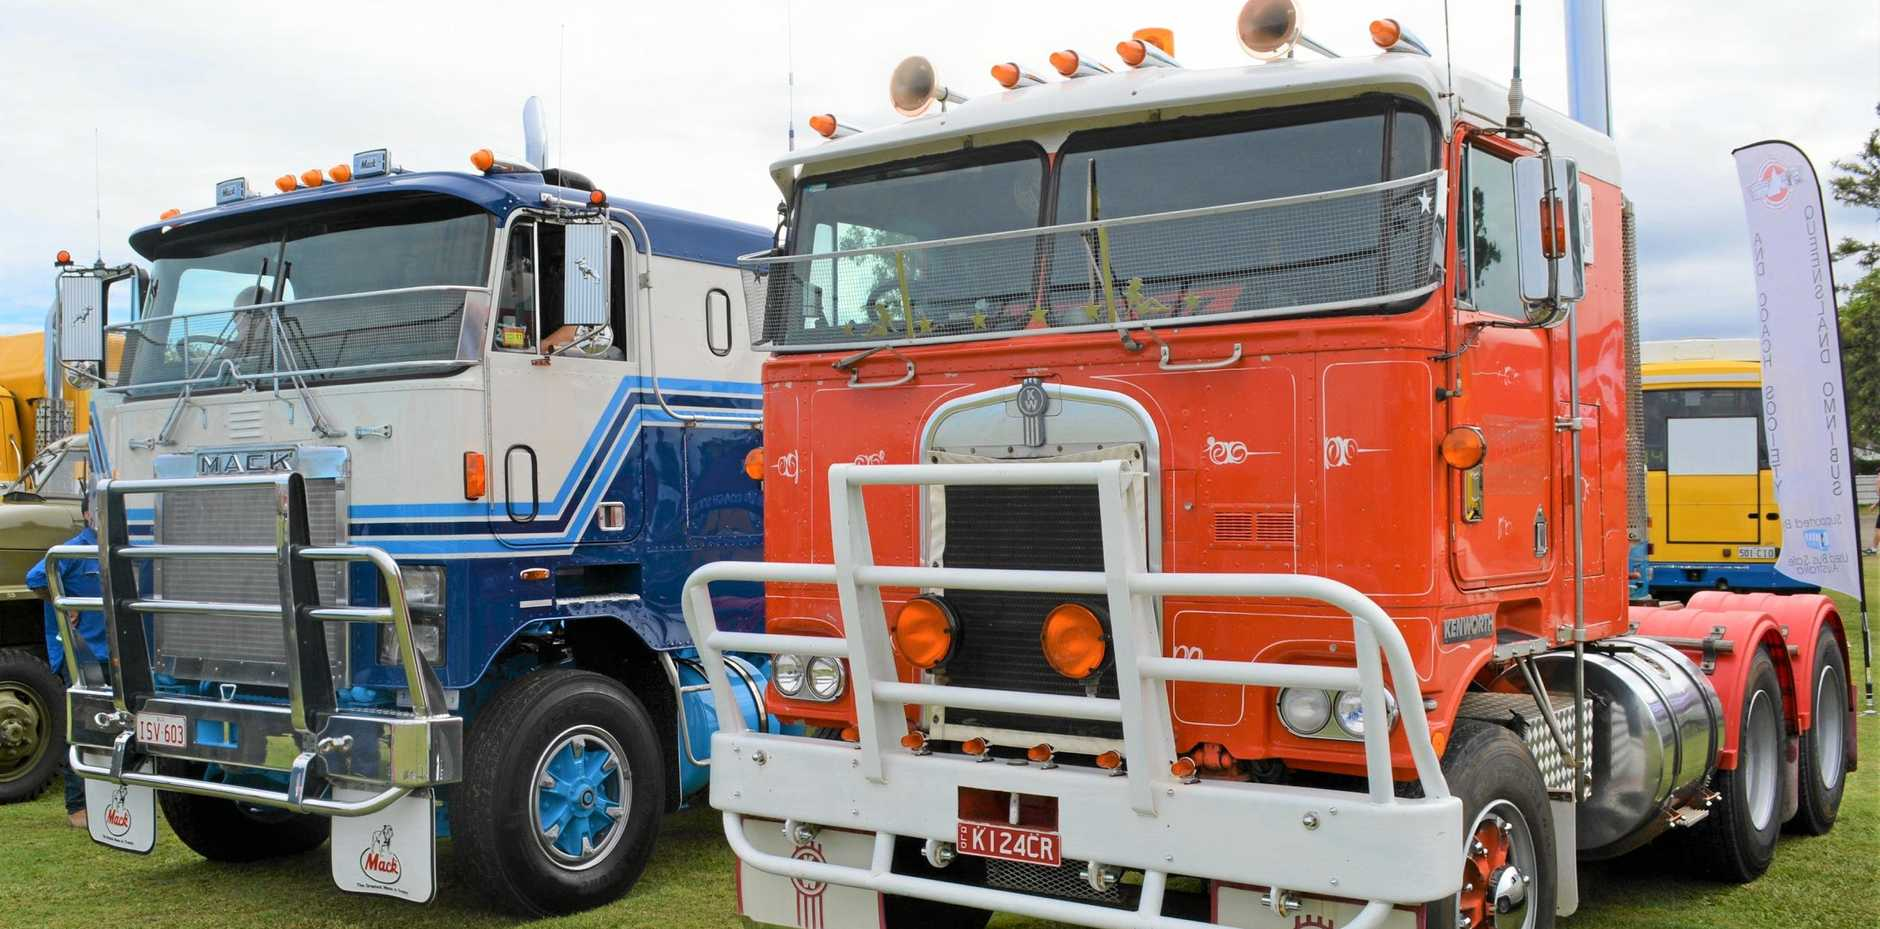 WHAT A BEAUTY: Darren's Mack at Rocklea with another heavy-hitter from the 1980s, a Kenworth K124.